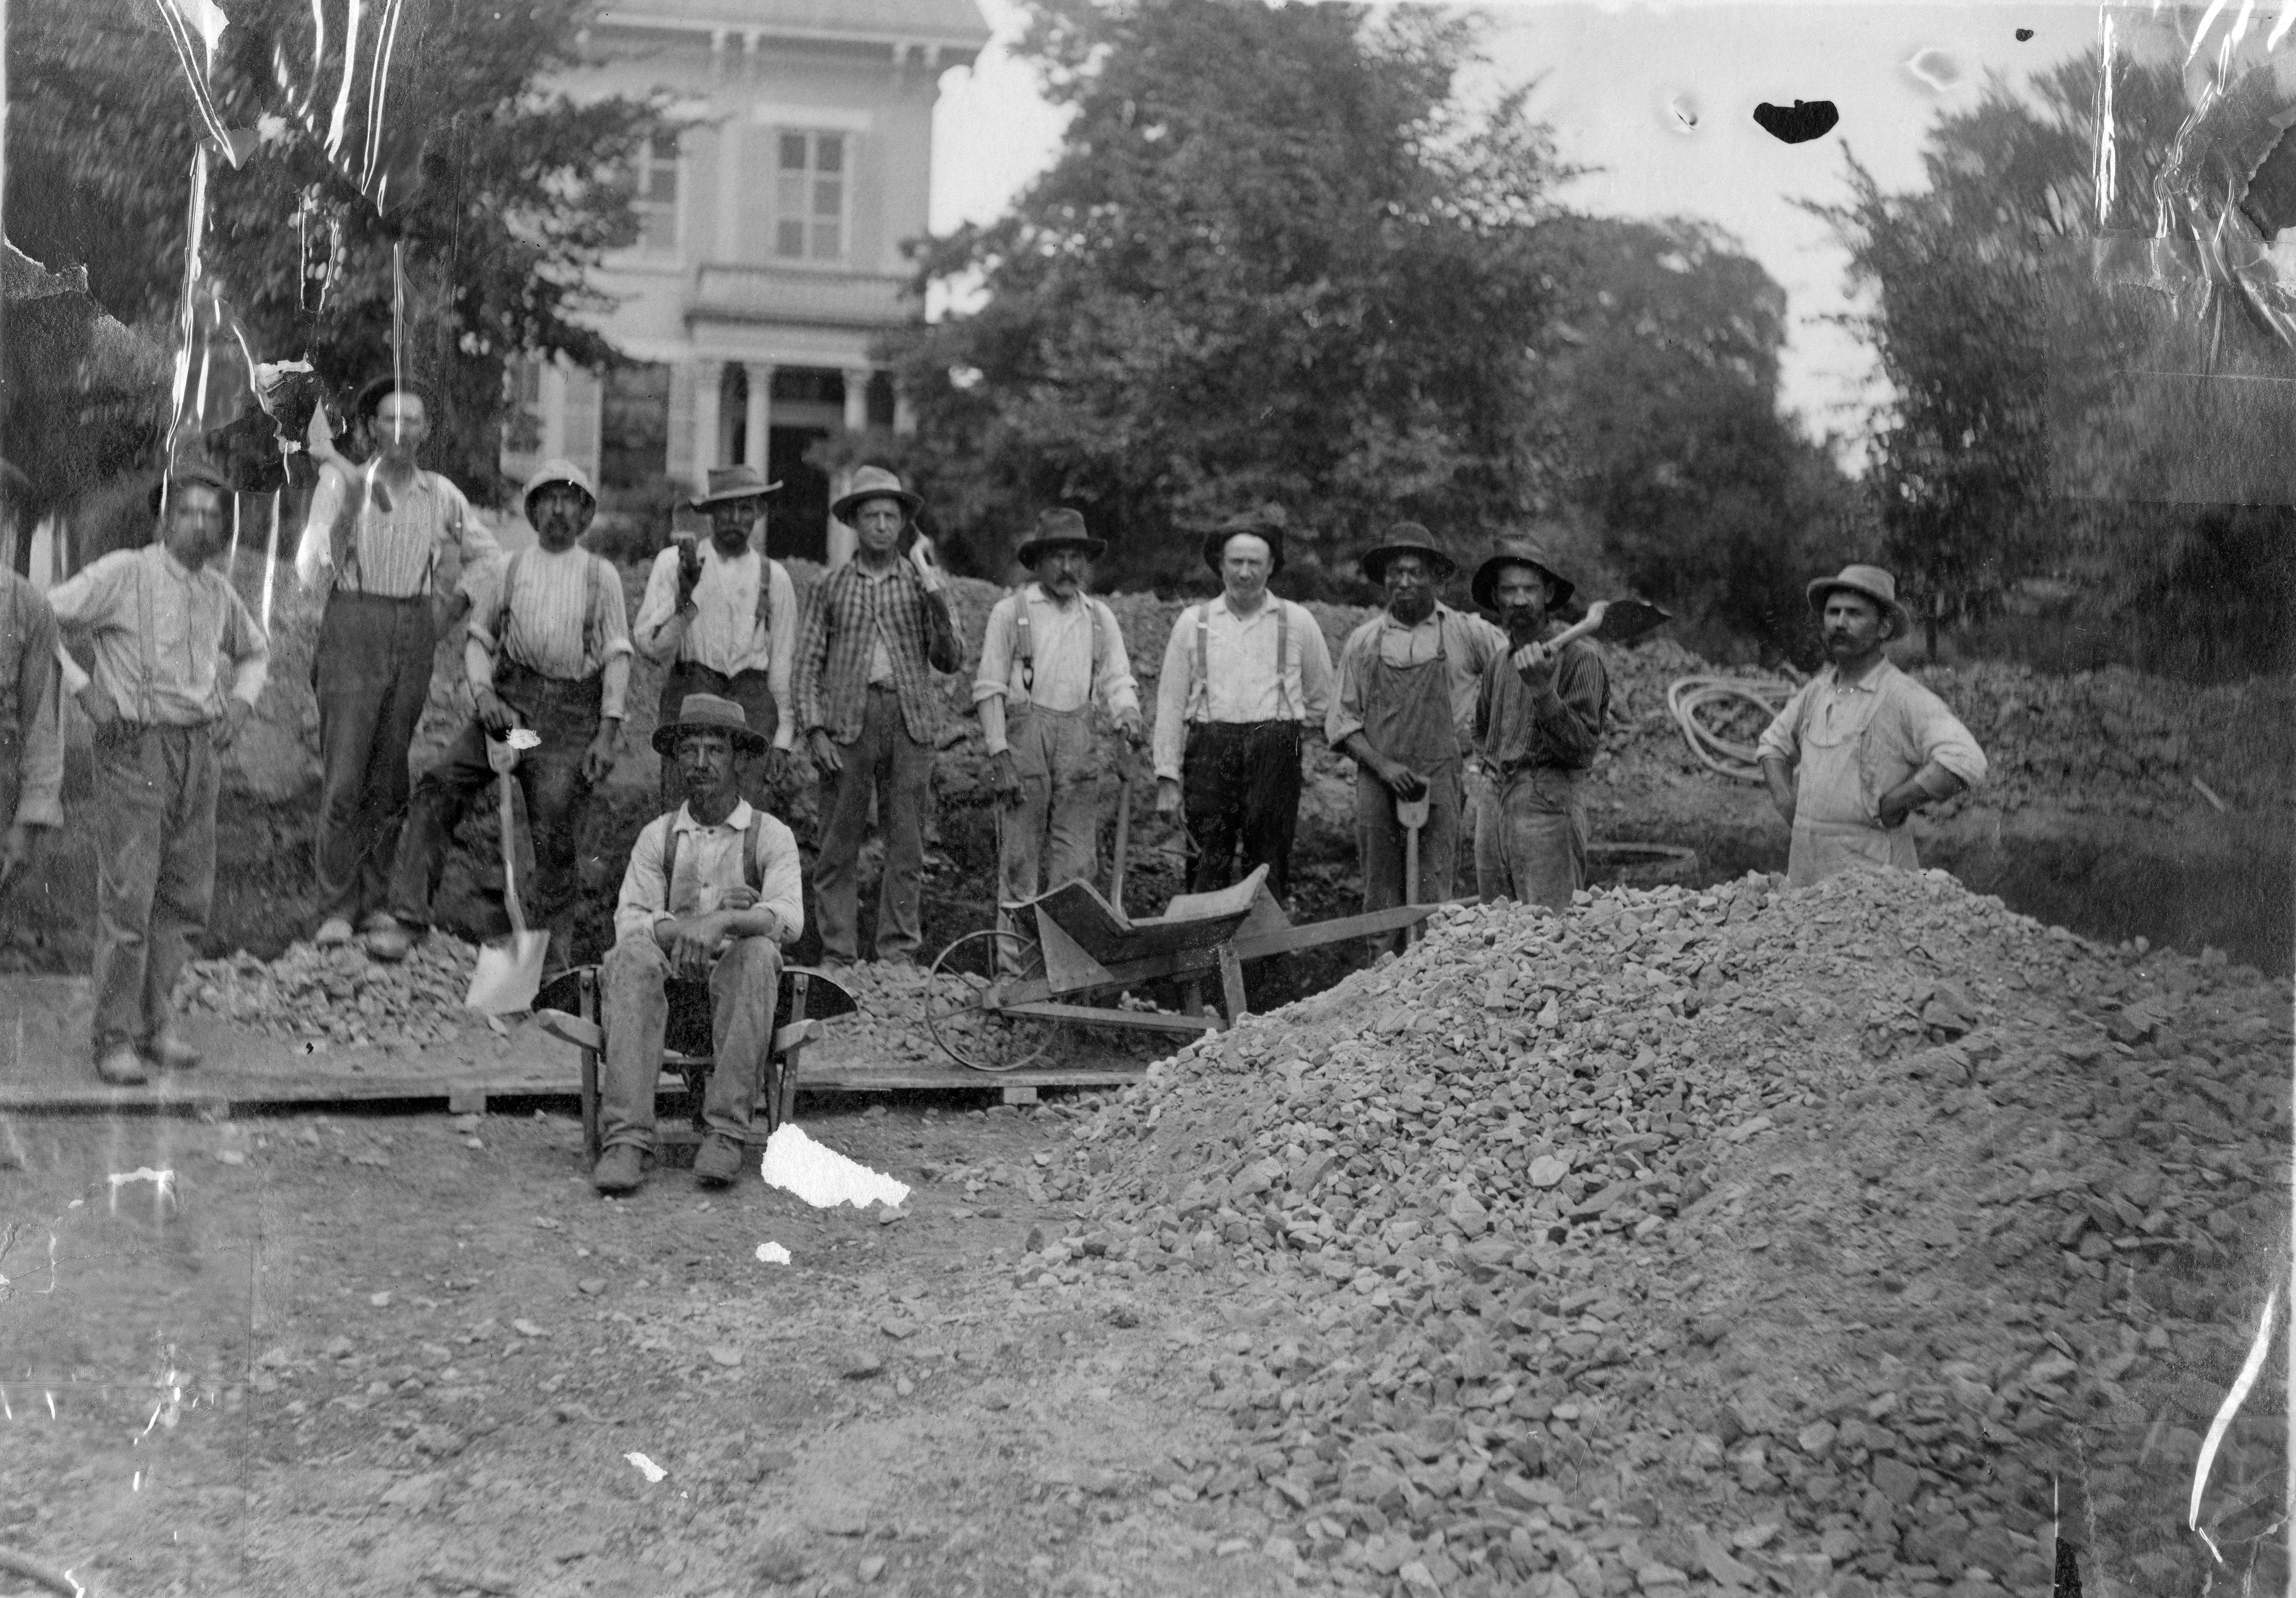 Workers pose in the dug out foundation of the Carnegie building next to a large pile of gravel